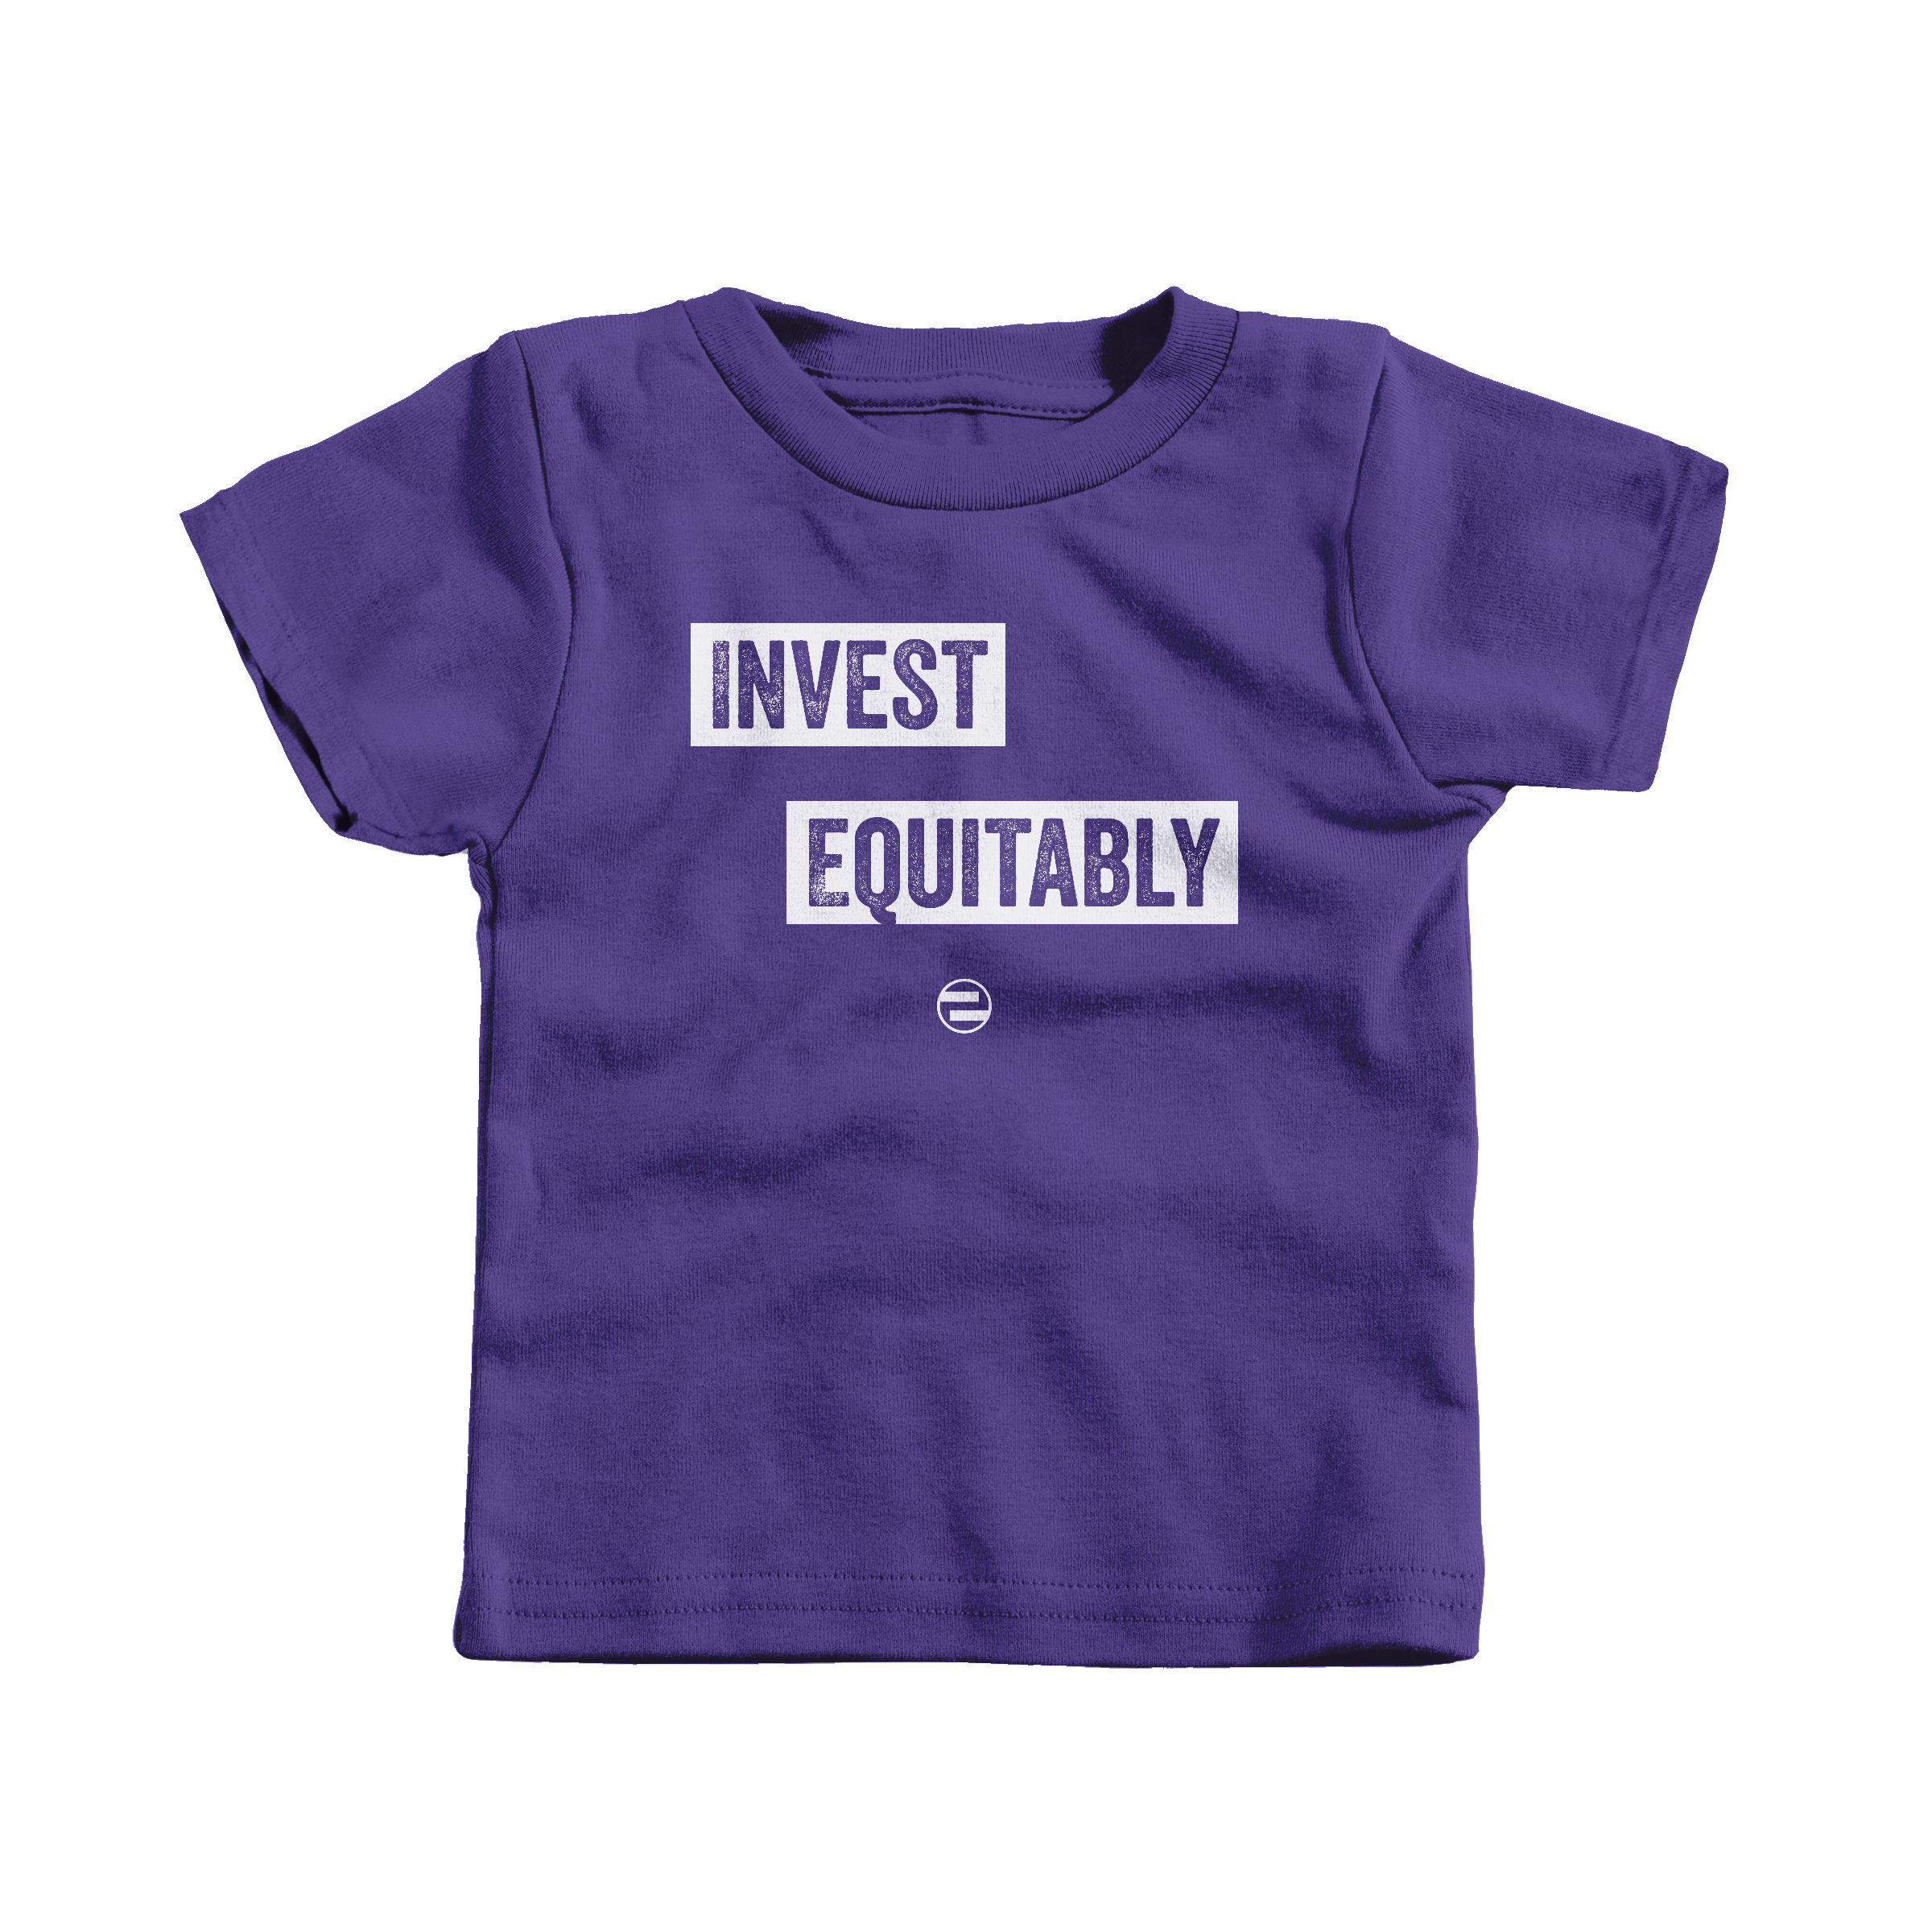 "GenEquality ""Invest Equitably"" Kids Tee & Onesie Purple (T-Shirt)"